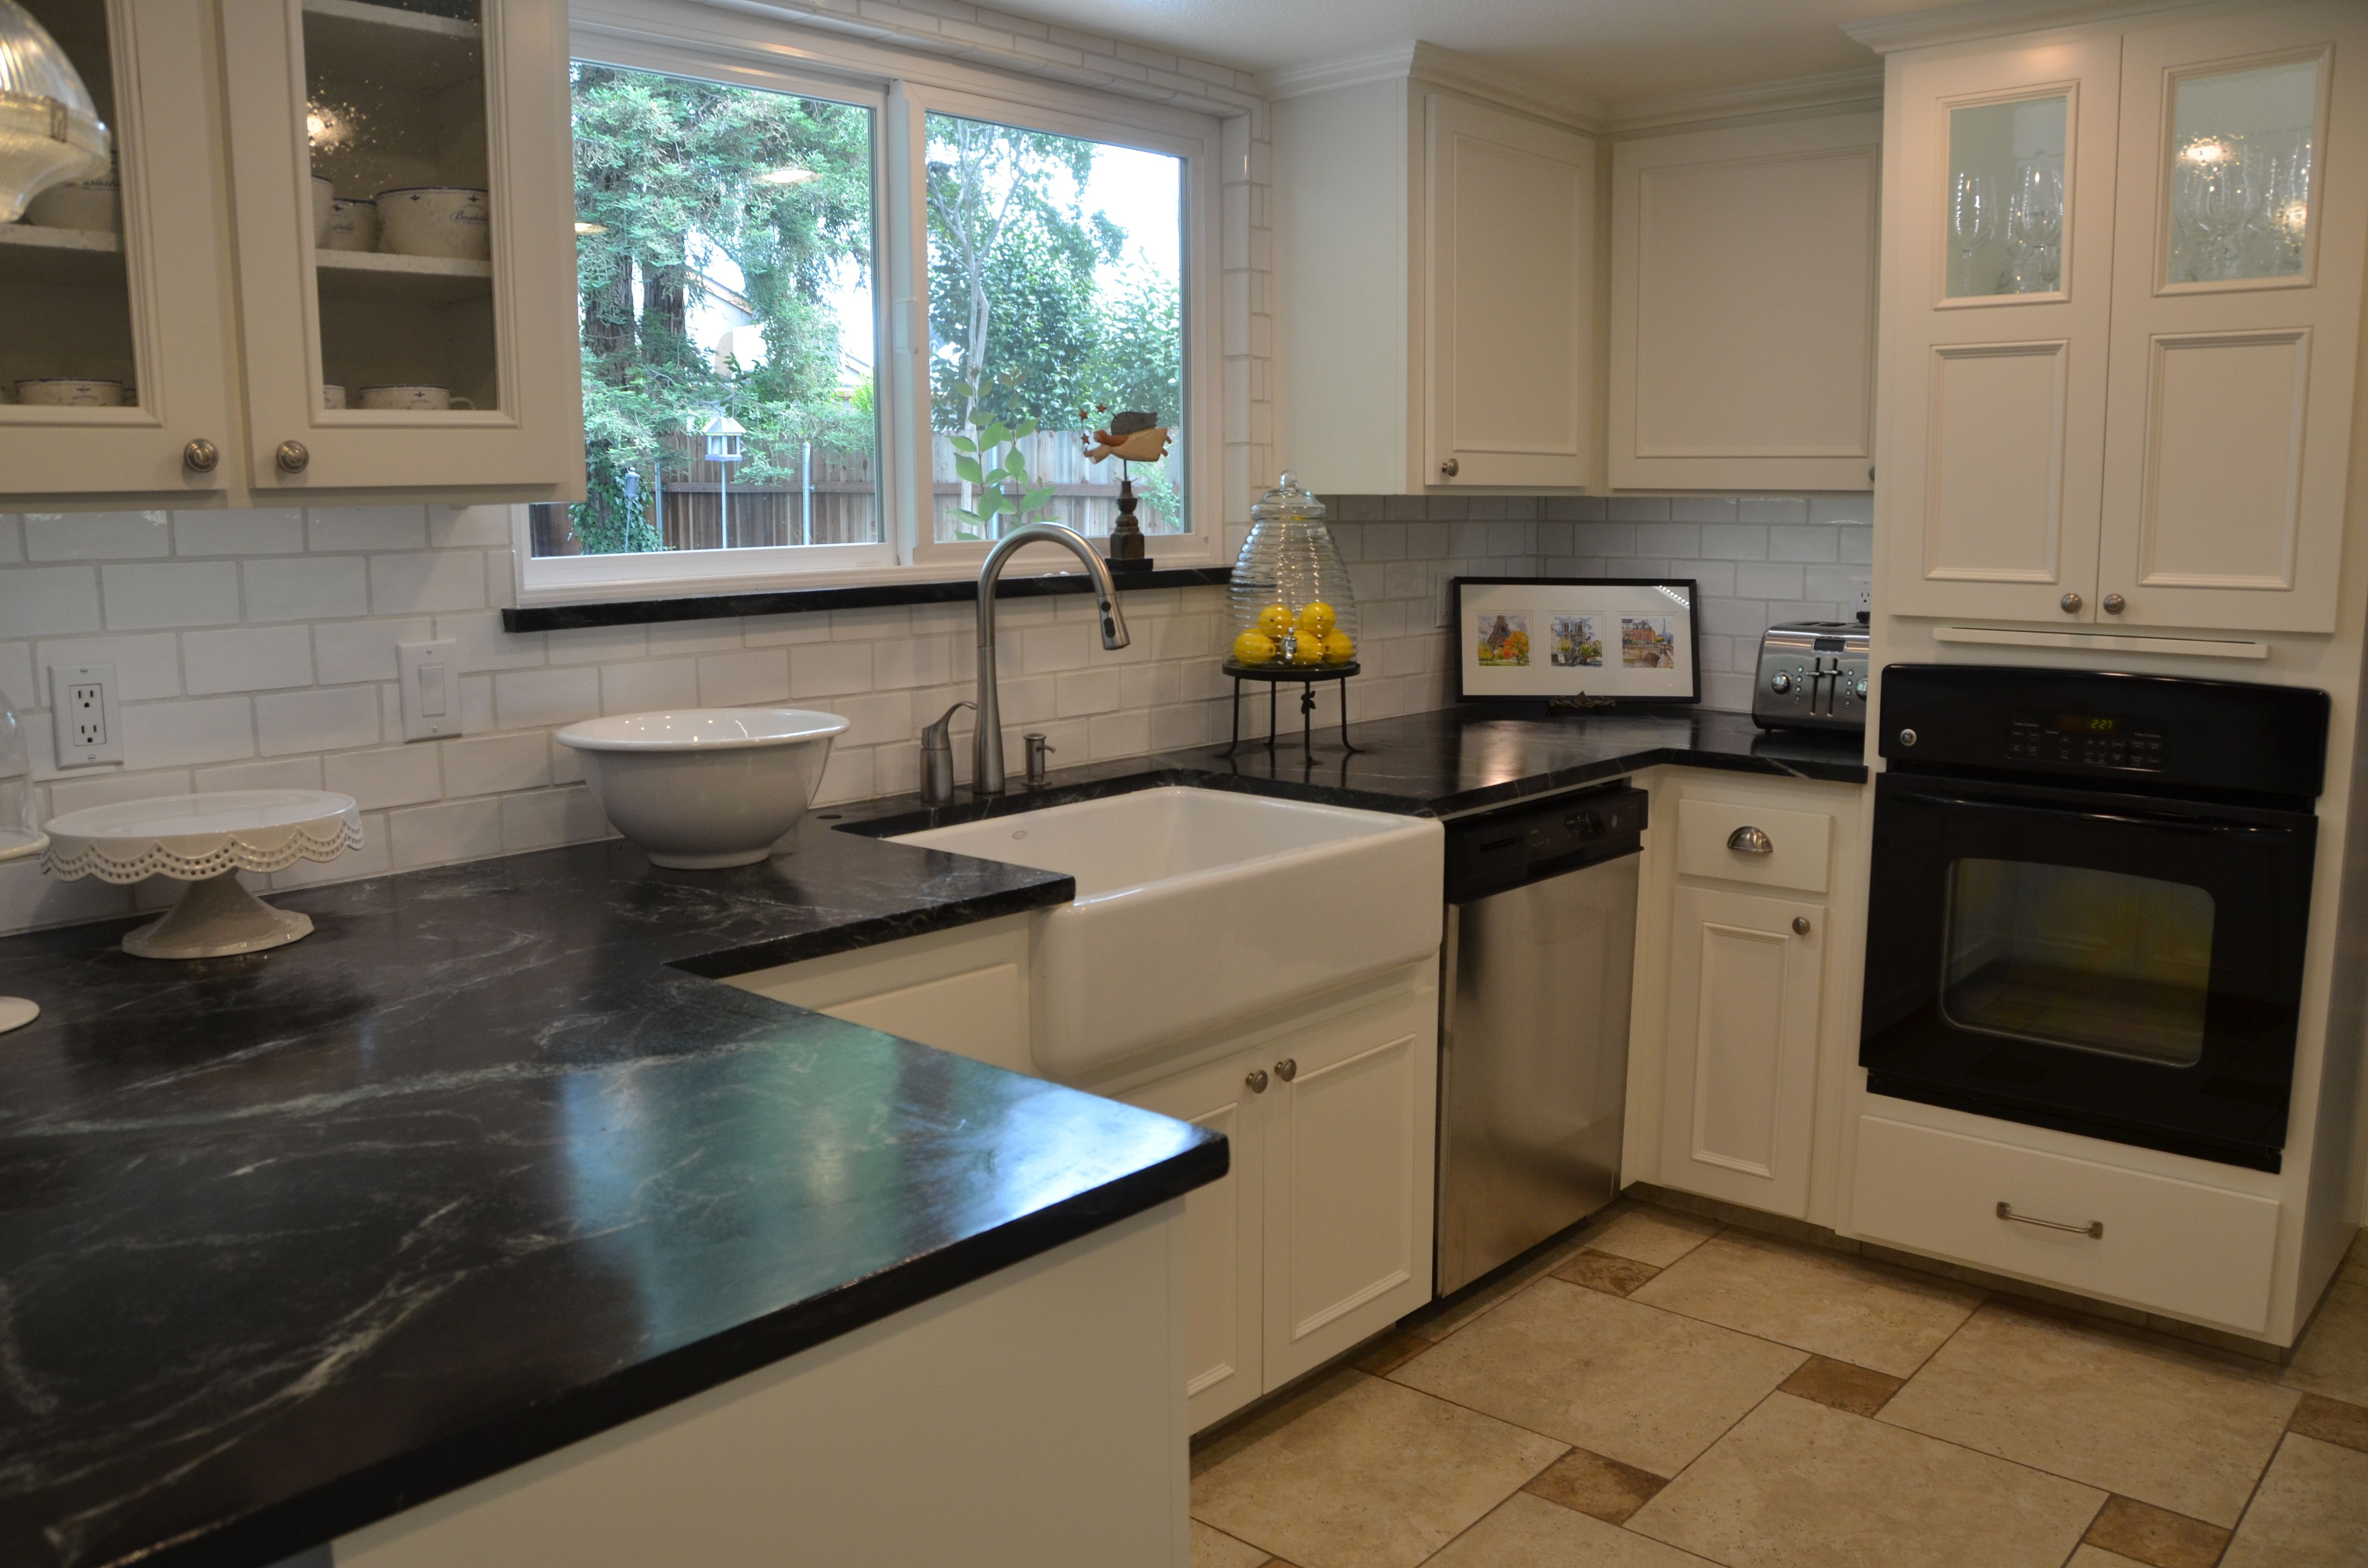 lovely kitchen photos new countertops designs granite ideas counter of pictures design